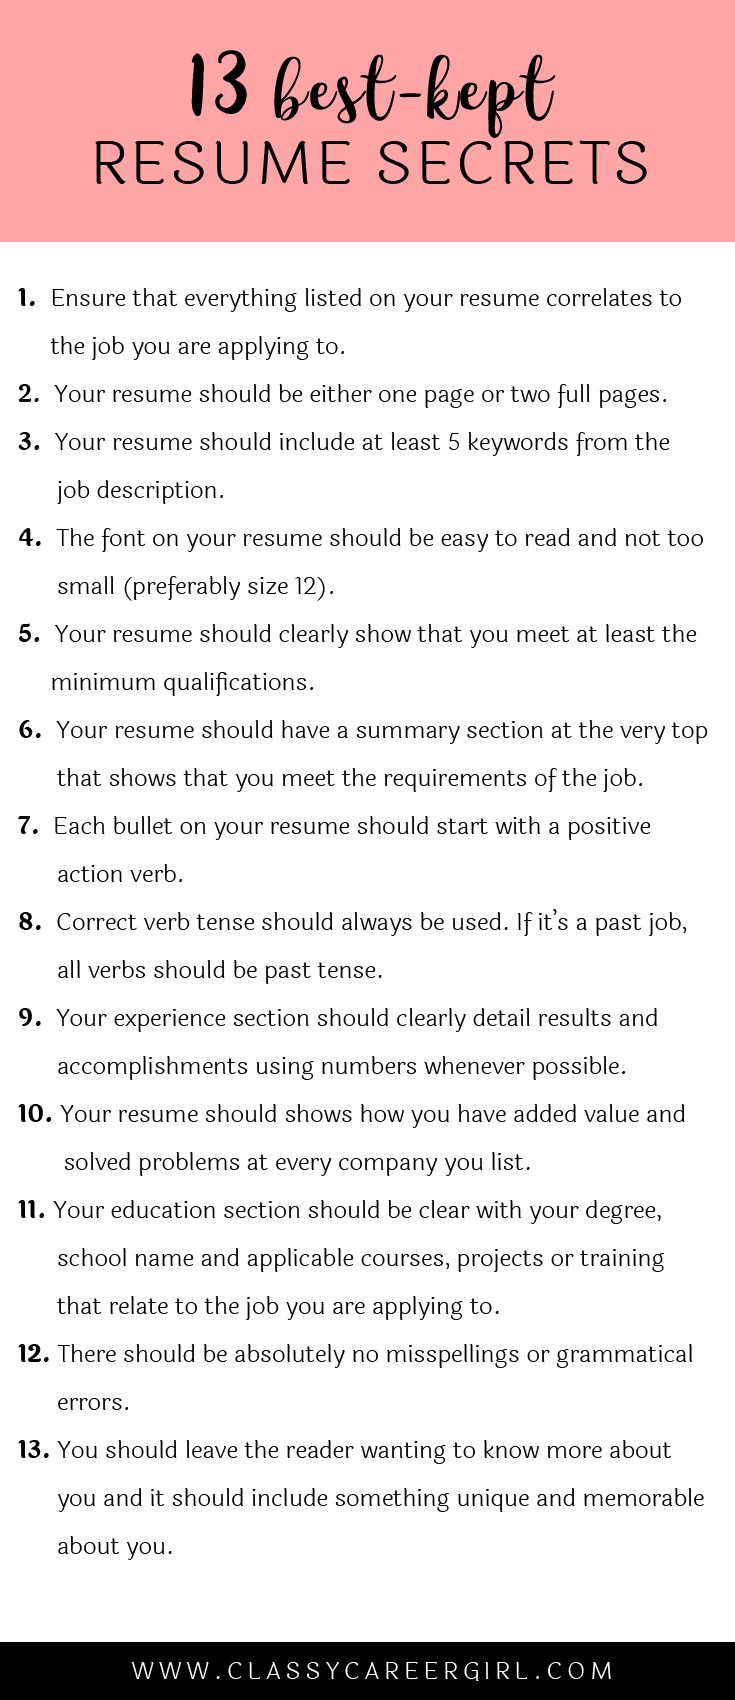 Opposenewapstandardsus  Wonderful  Ideas About Resume On Pinterest  Cv Format Resume Cv And  With Remarkable Some Hiring Managers Will Toss Your Resume Out If You Dont Know These  With Amusing Two Page Resume Also Make A Free Resume In Addition Cover Letters For Resume And High School Graduate Resume As Well As Objective Resume Examples Additionally Should A Resume Be One Page From Pinterestcom With Opposenewapstandardsus  Remarkable  Ideas About Resume On Pinterest  Cv Format Resume Cv And  With Amusing Some Hiring Managers Will Toss Your Resume Out If You Dont Know These  And Wonderful Two Page Resume Also Make A Free Resume In Addition Cover Letters For Resume From Pinterestcom